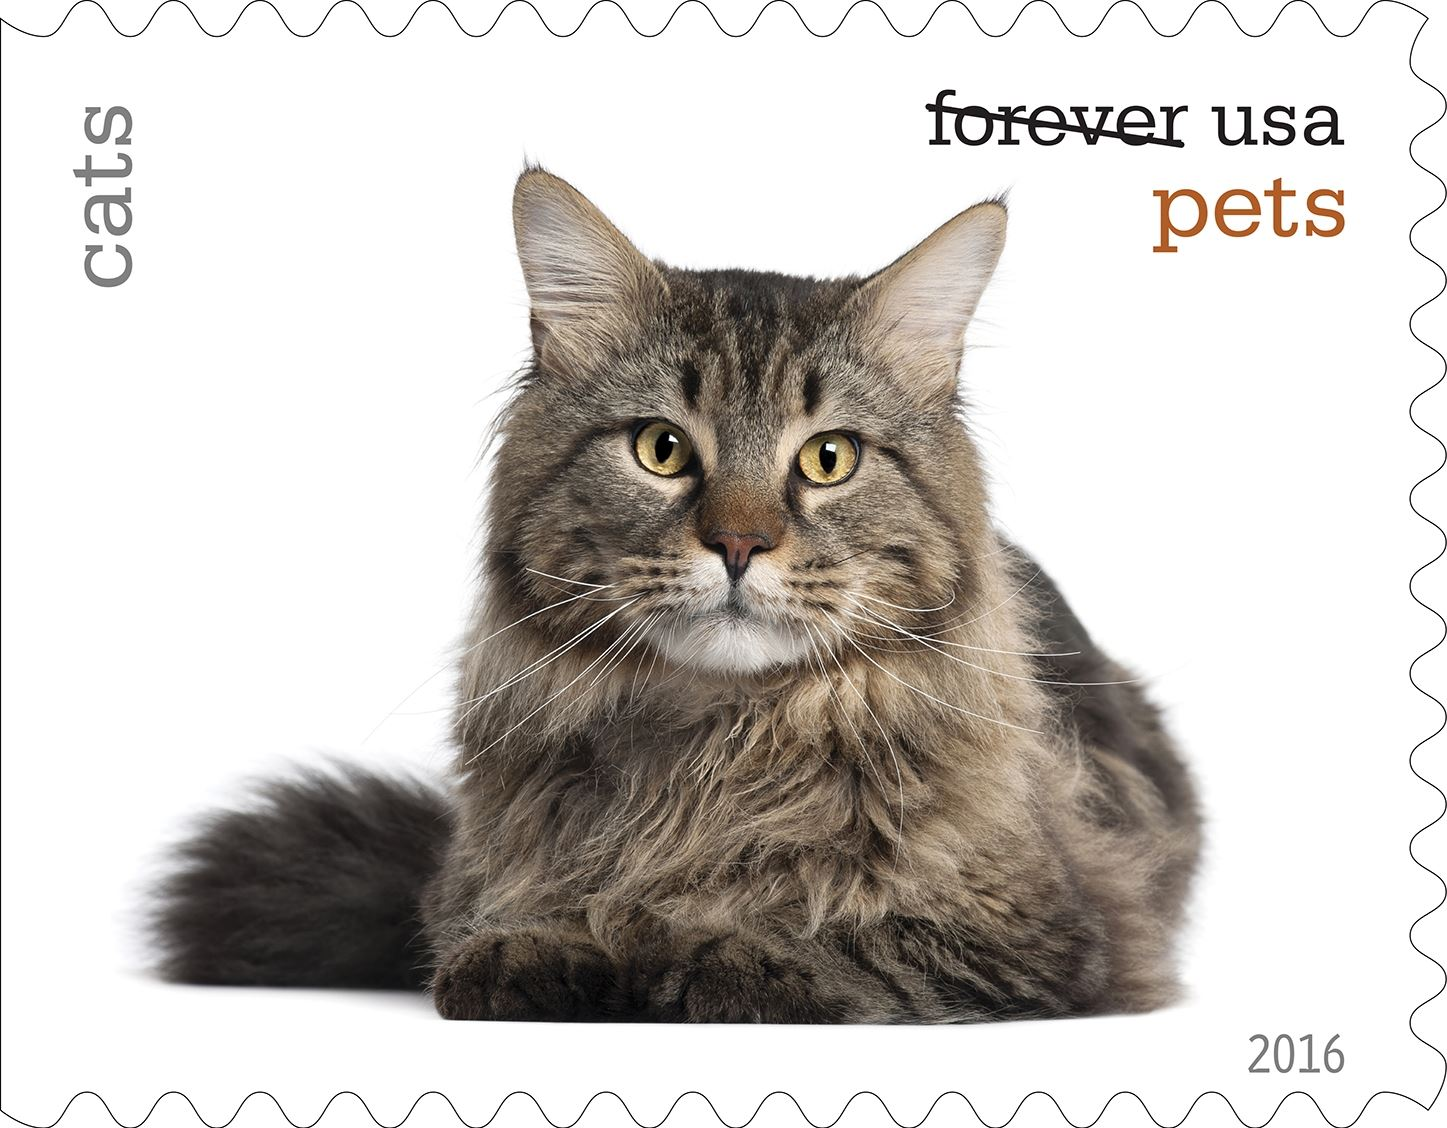 1-0_USPS16STA004b-1 Cats will be among the pets celebrated in an upcoming set of Forever stamps issued by the U.S. Postal Service.